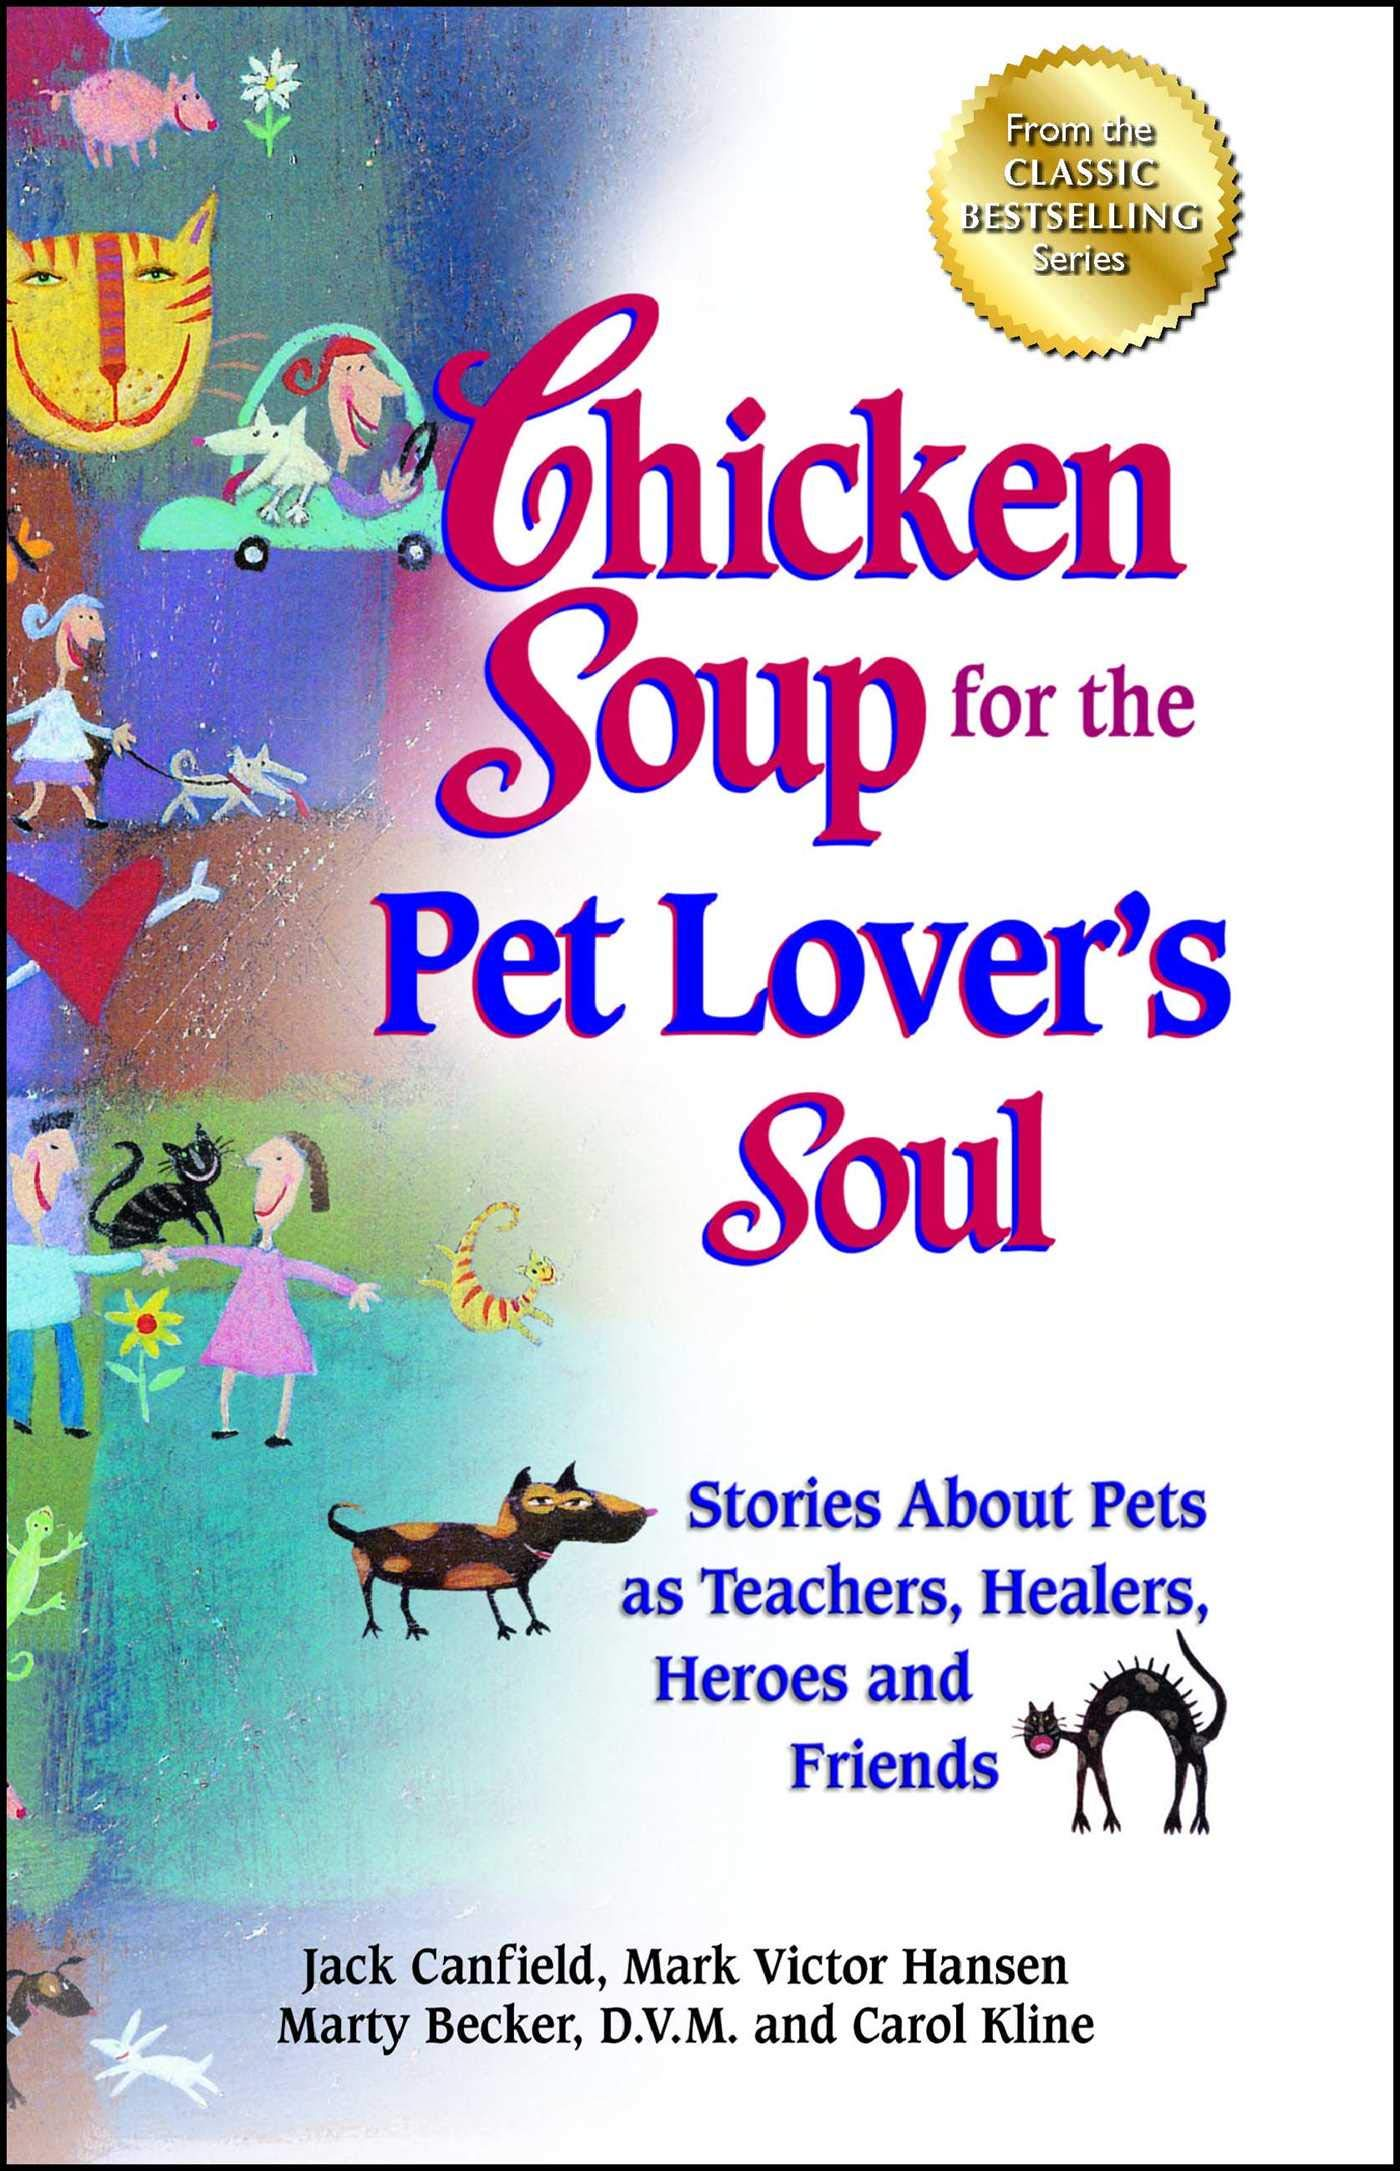 Amazon.com: Chicken Soup for the Pet Lover's Soul: Stories About Pets as  Teachers, Healers, Heroes and Friends (Chicken Soup for the Soul)  (9781623610555): ...